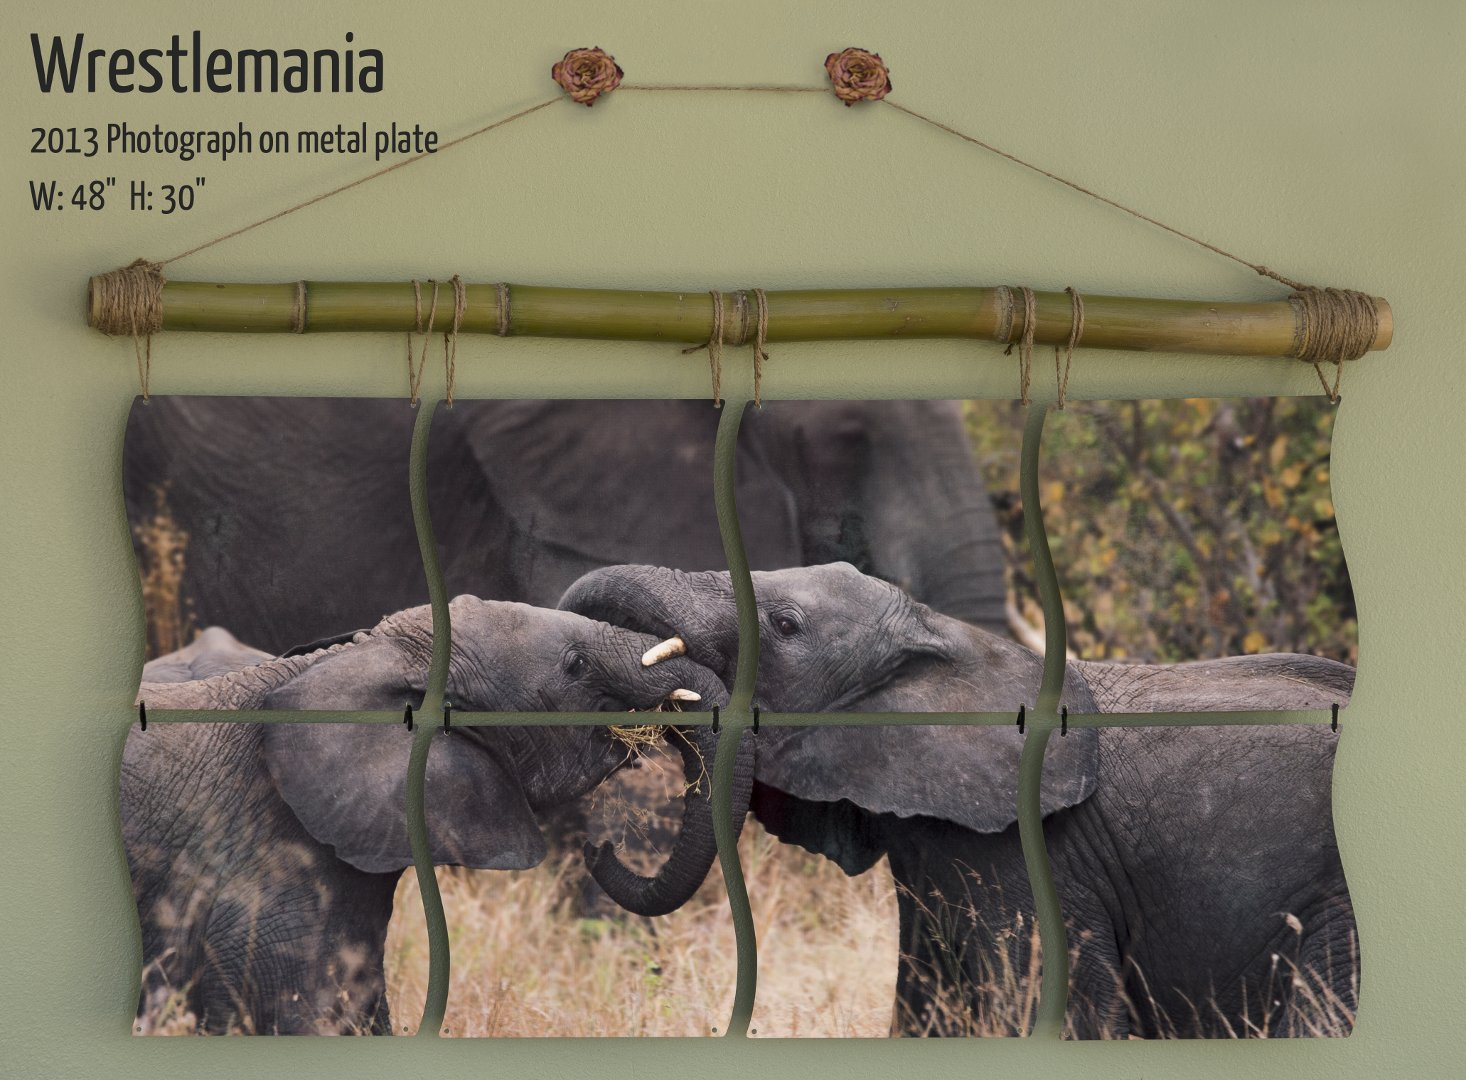 """Wrestlemania. Photographic mural by Terrence Robertson-Fall of young elephants wrestling in Tanzania, Africa. 48""""x30"""""""